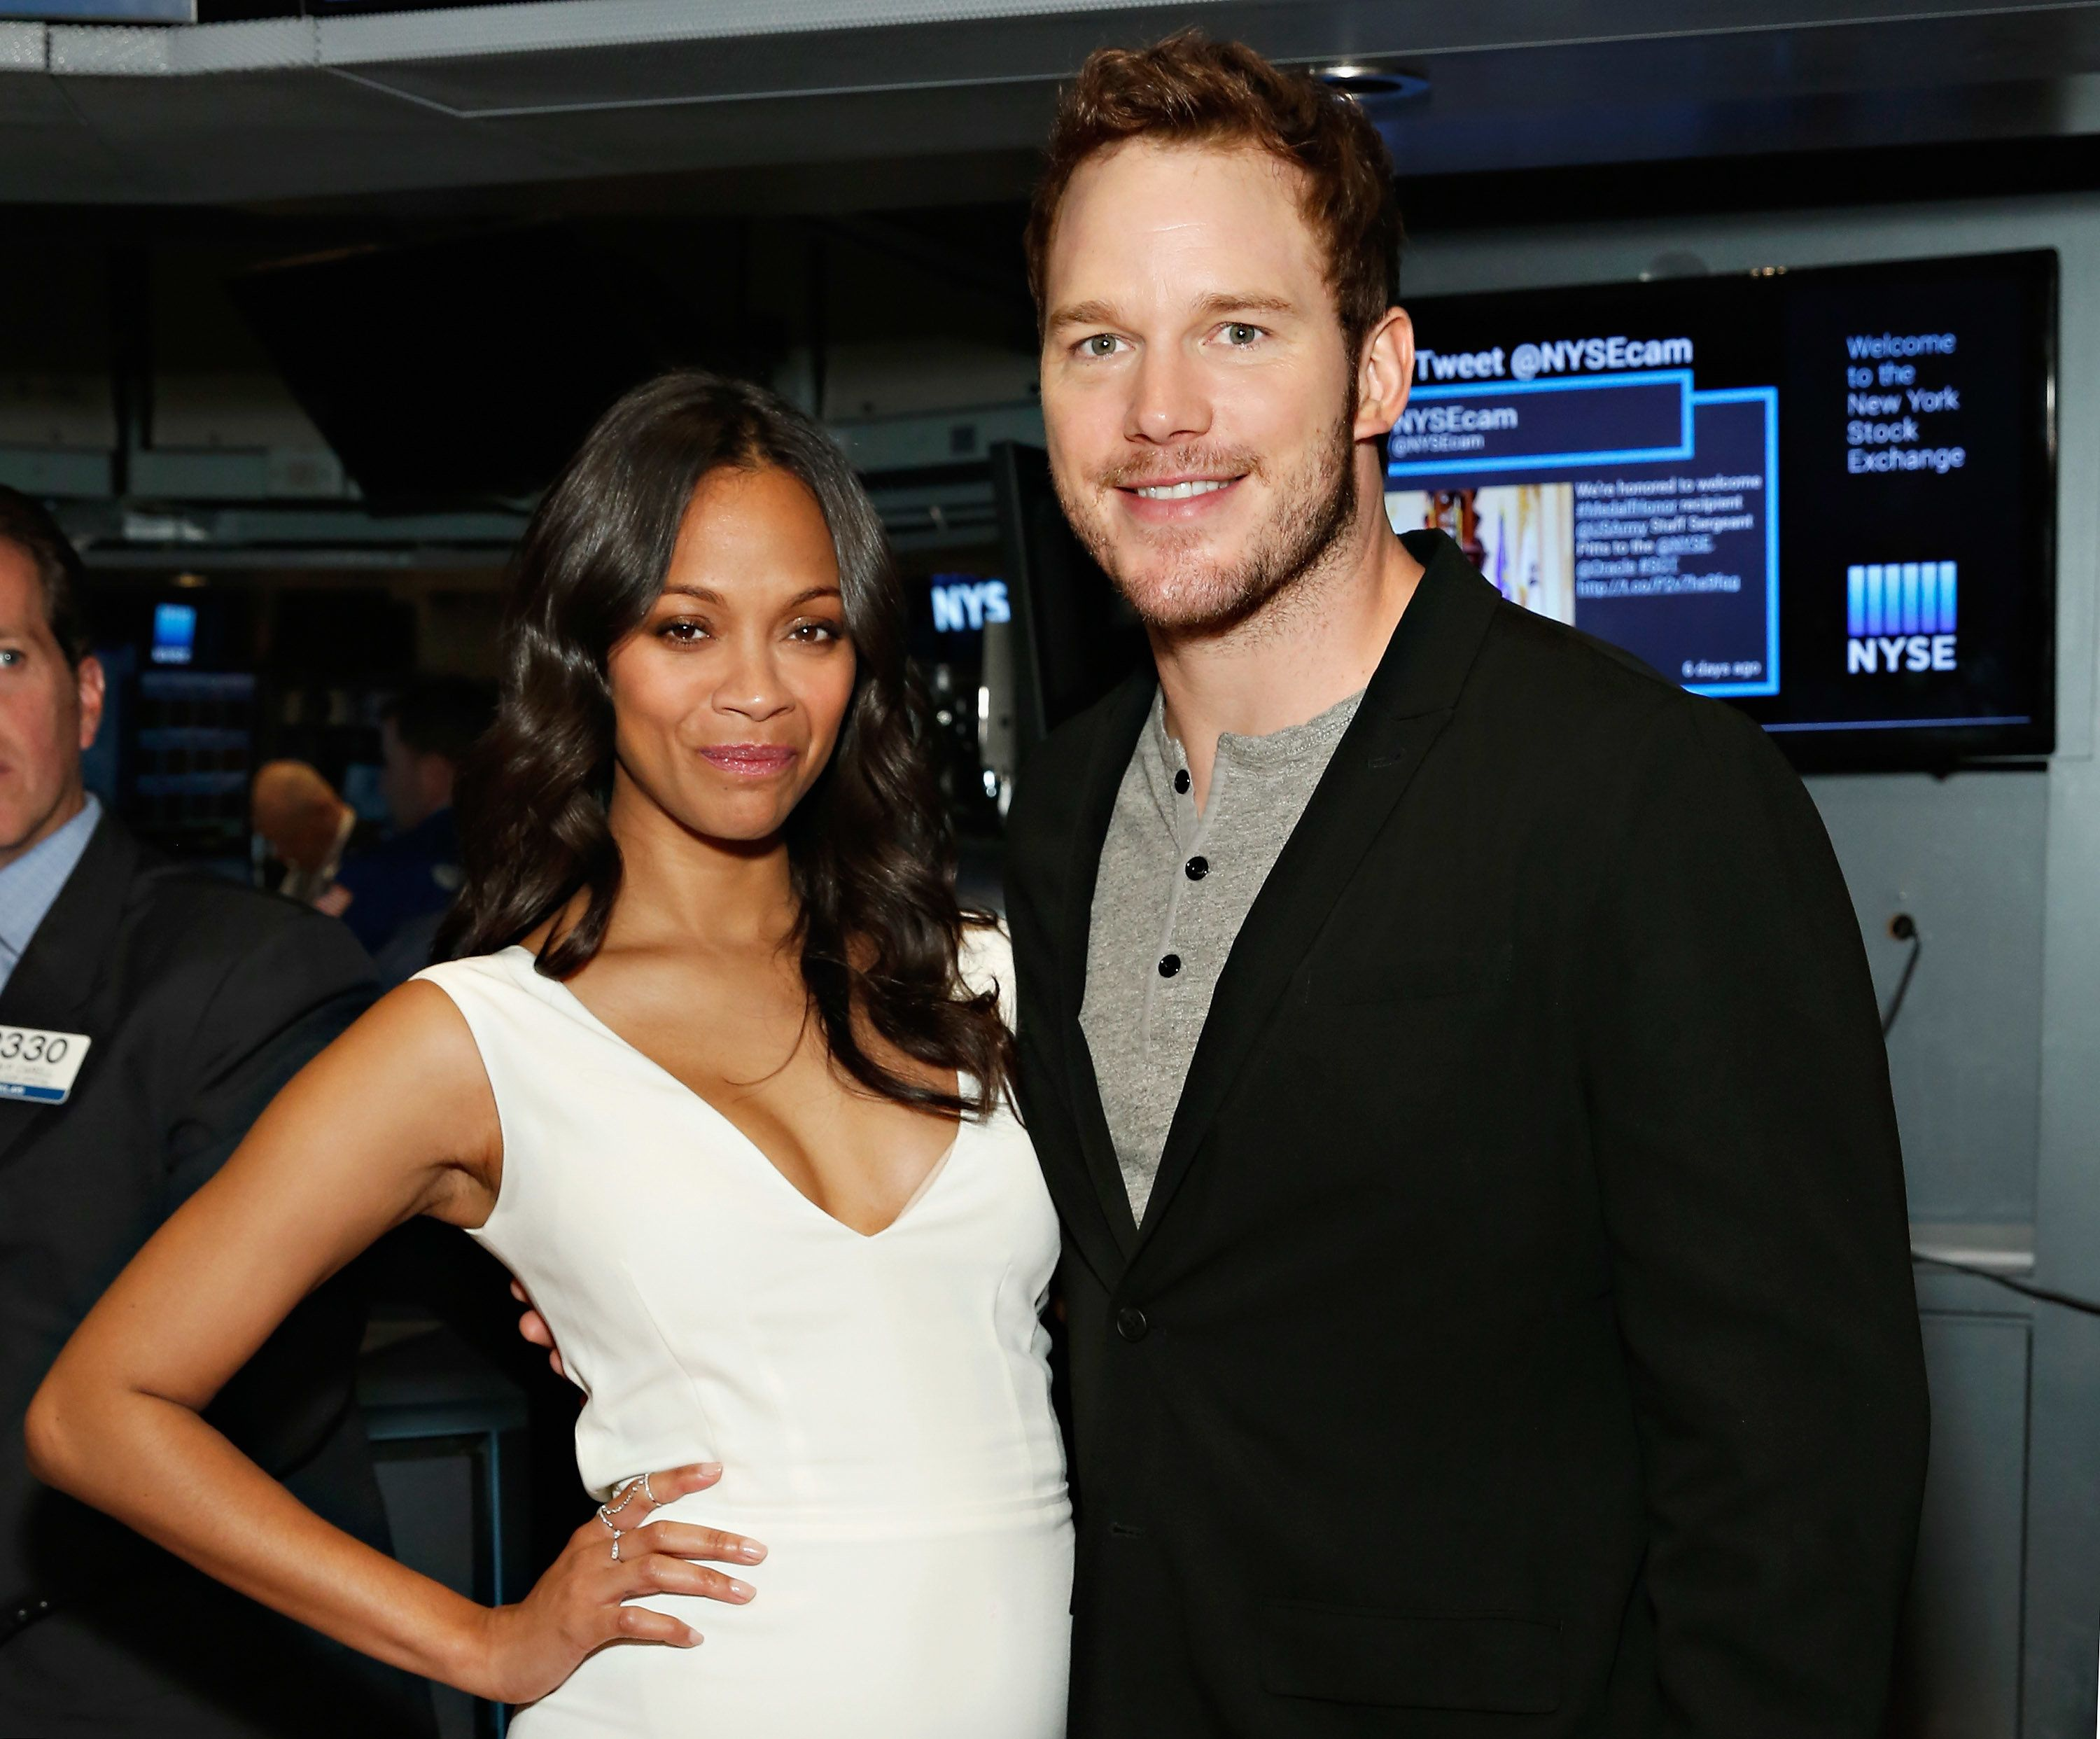 NEW YORK, NY - JULY 29:  Actors Zoe Saldana and Chris Pratt visit the New York Stock Exchange on July 29, 2014 in New York City.  (Photo by Cindy Ord/Getty Images)